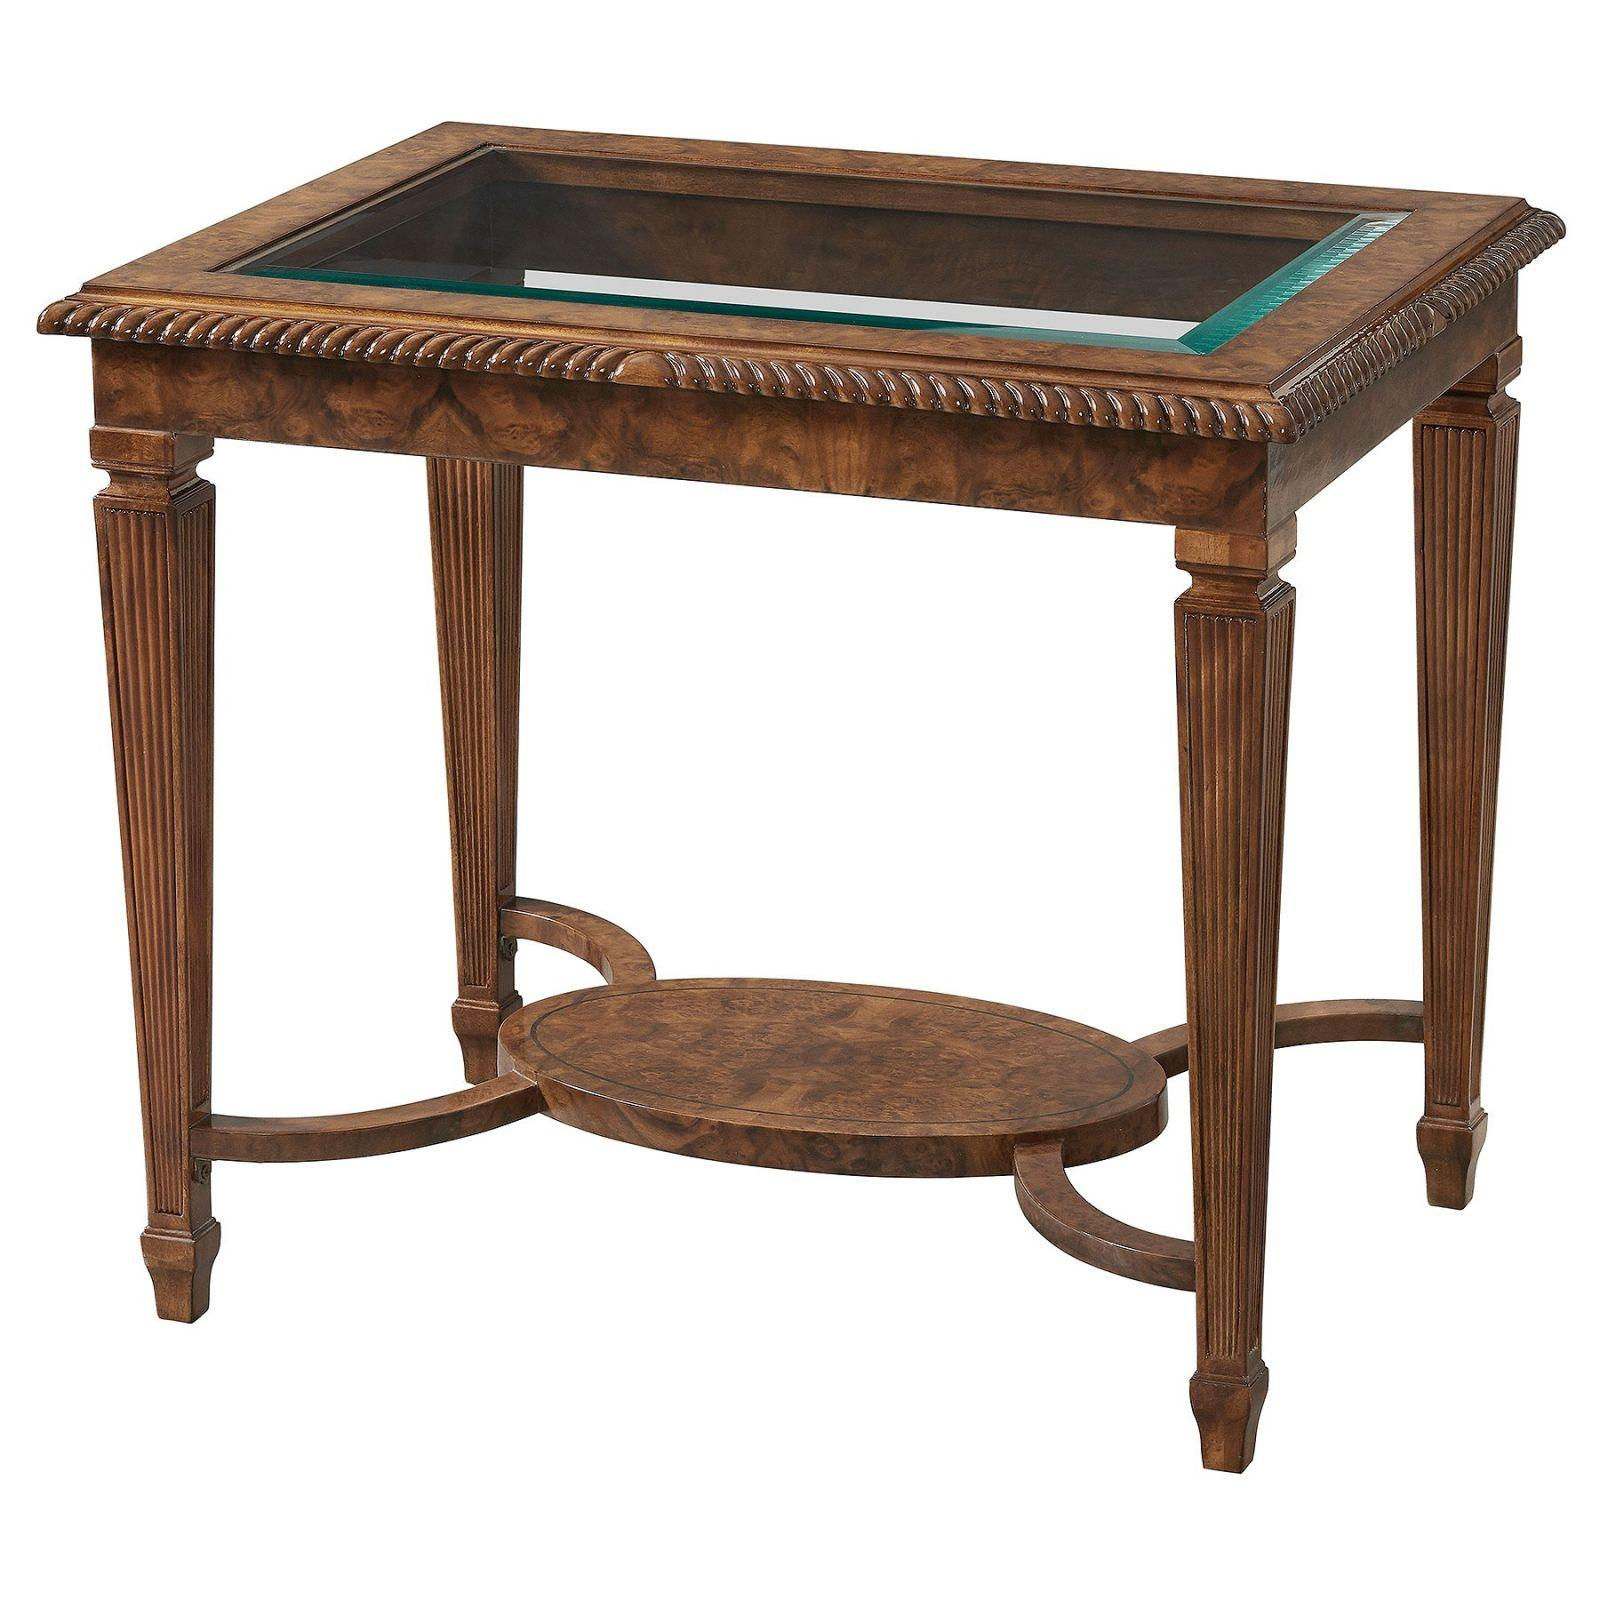 Burr walnut side or lamp table with glass top